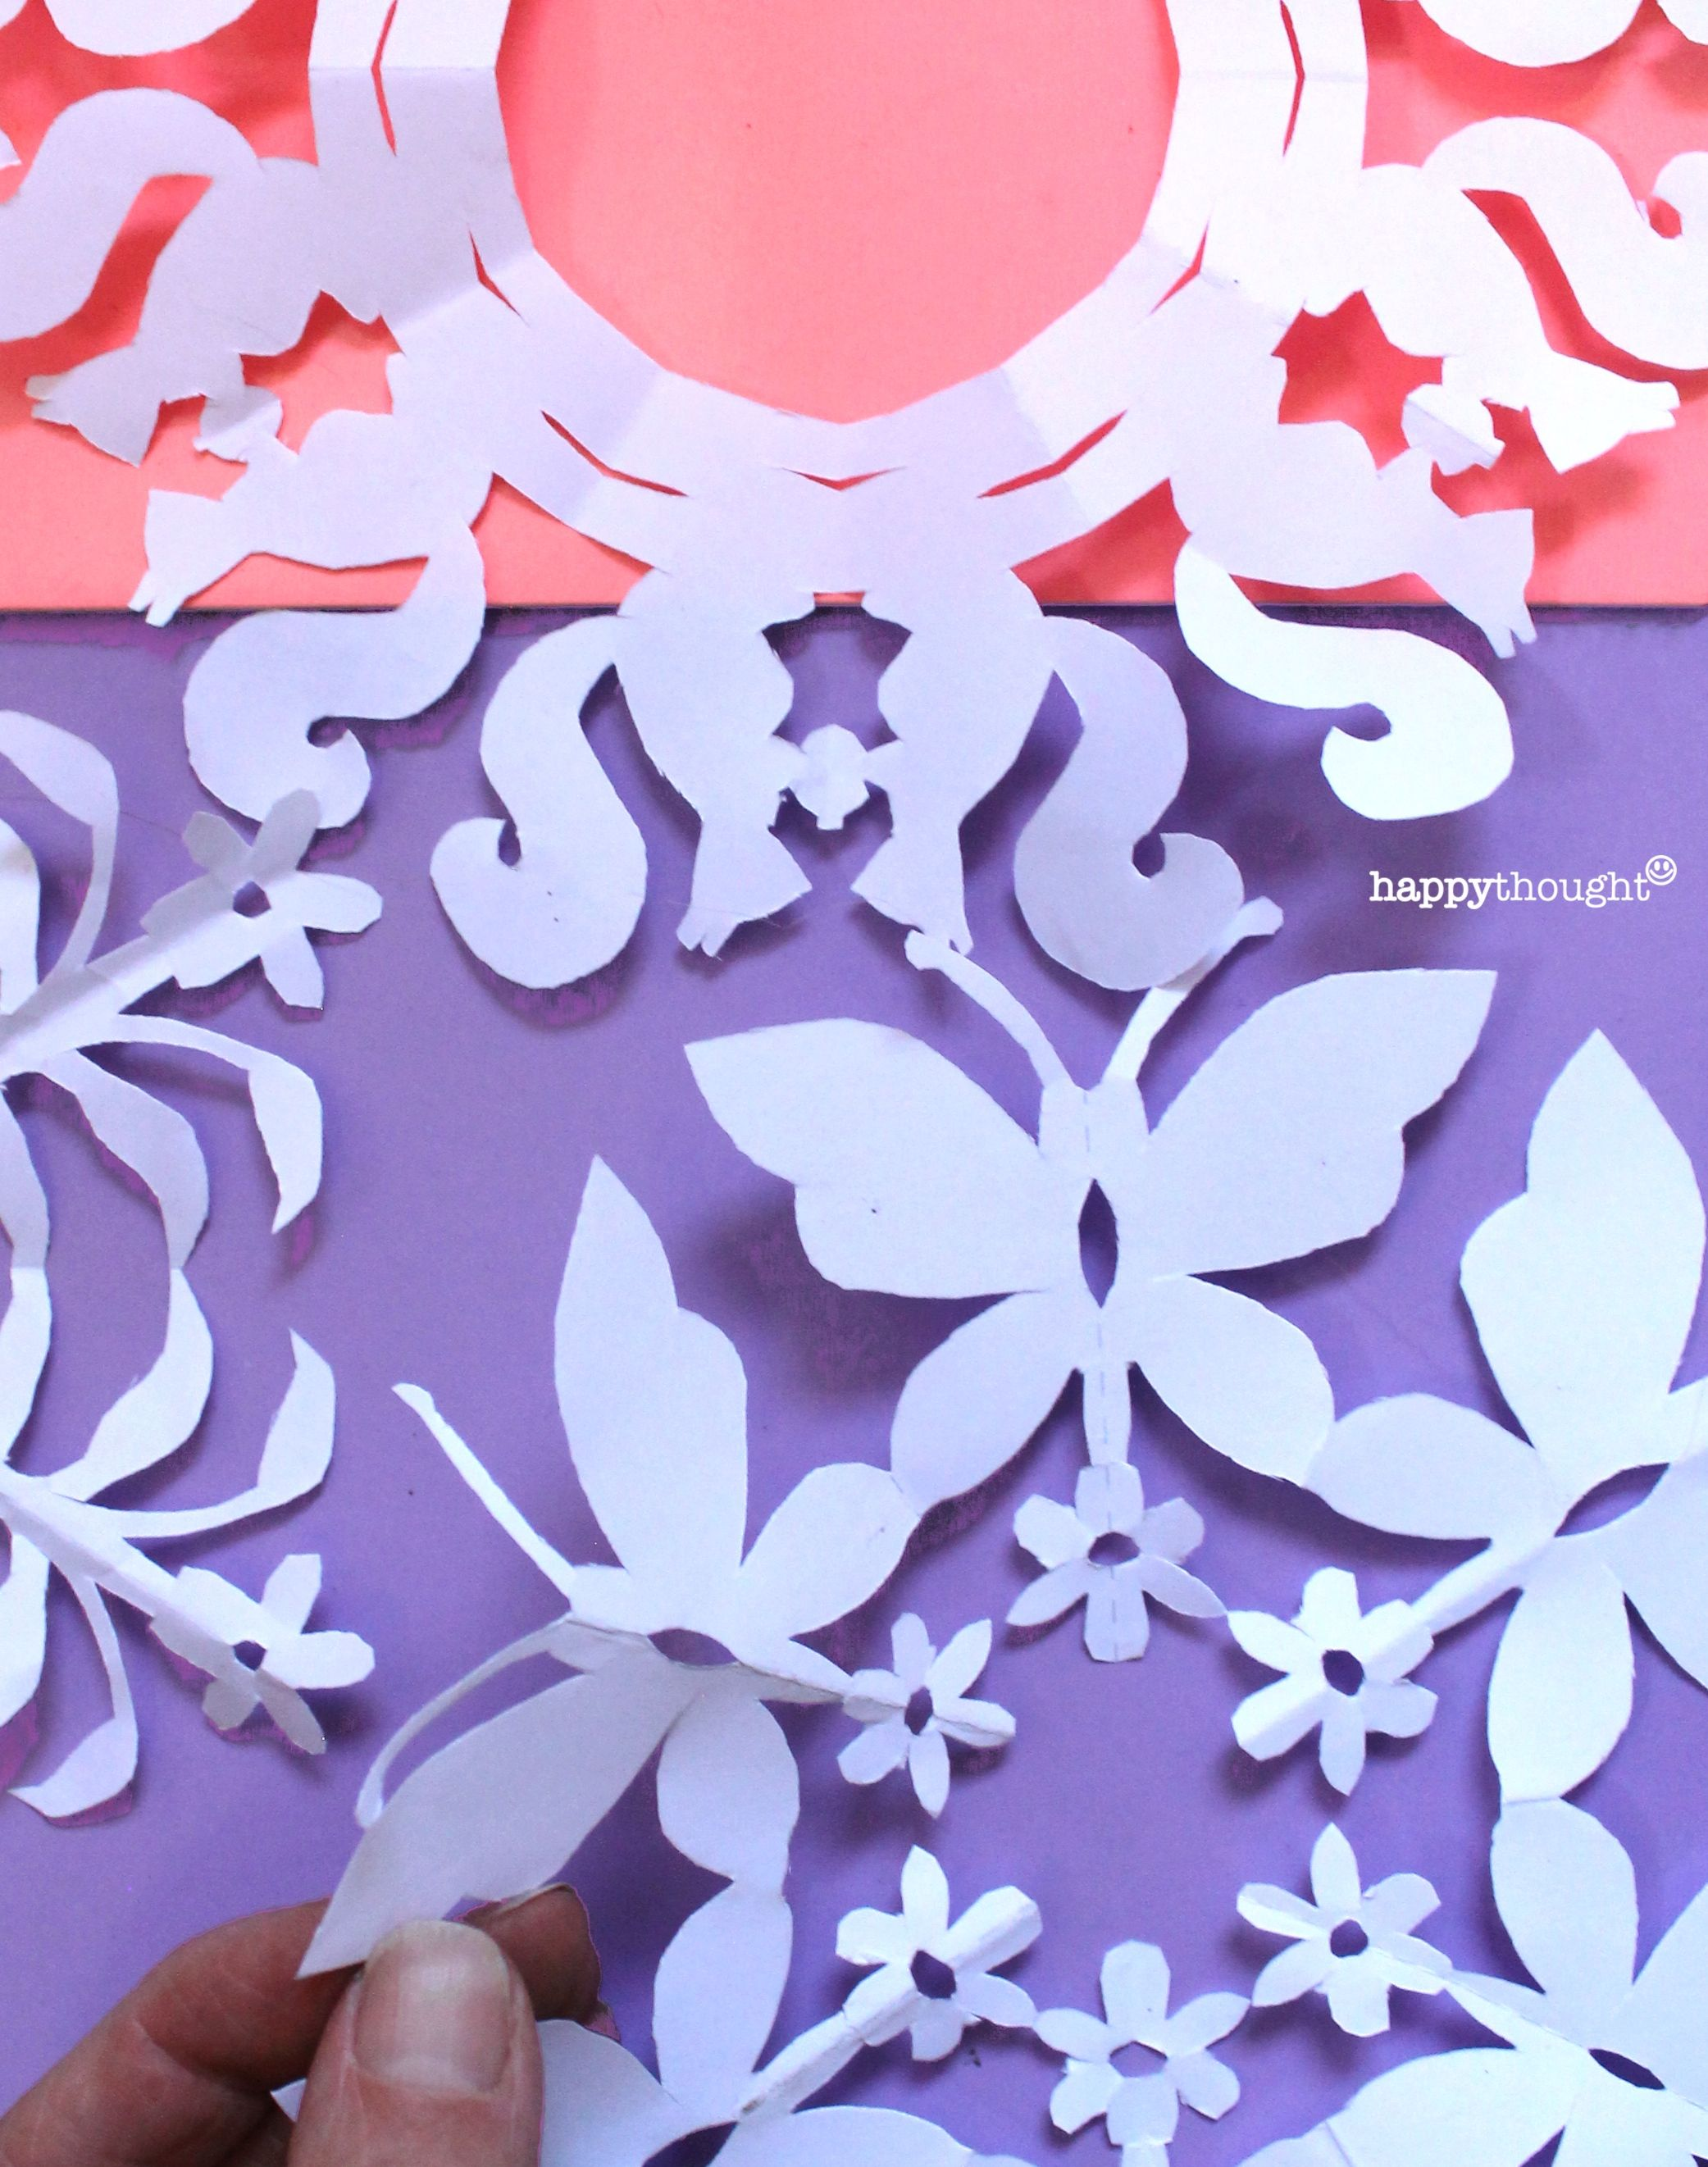 Printable Templates For Fun Crafts At Happythought Free